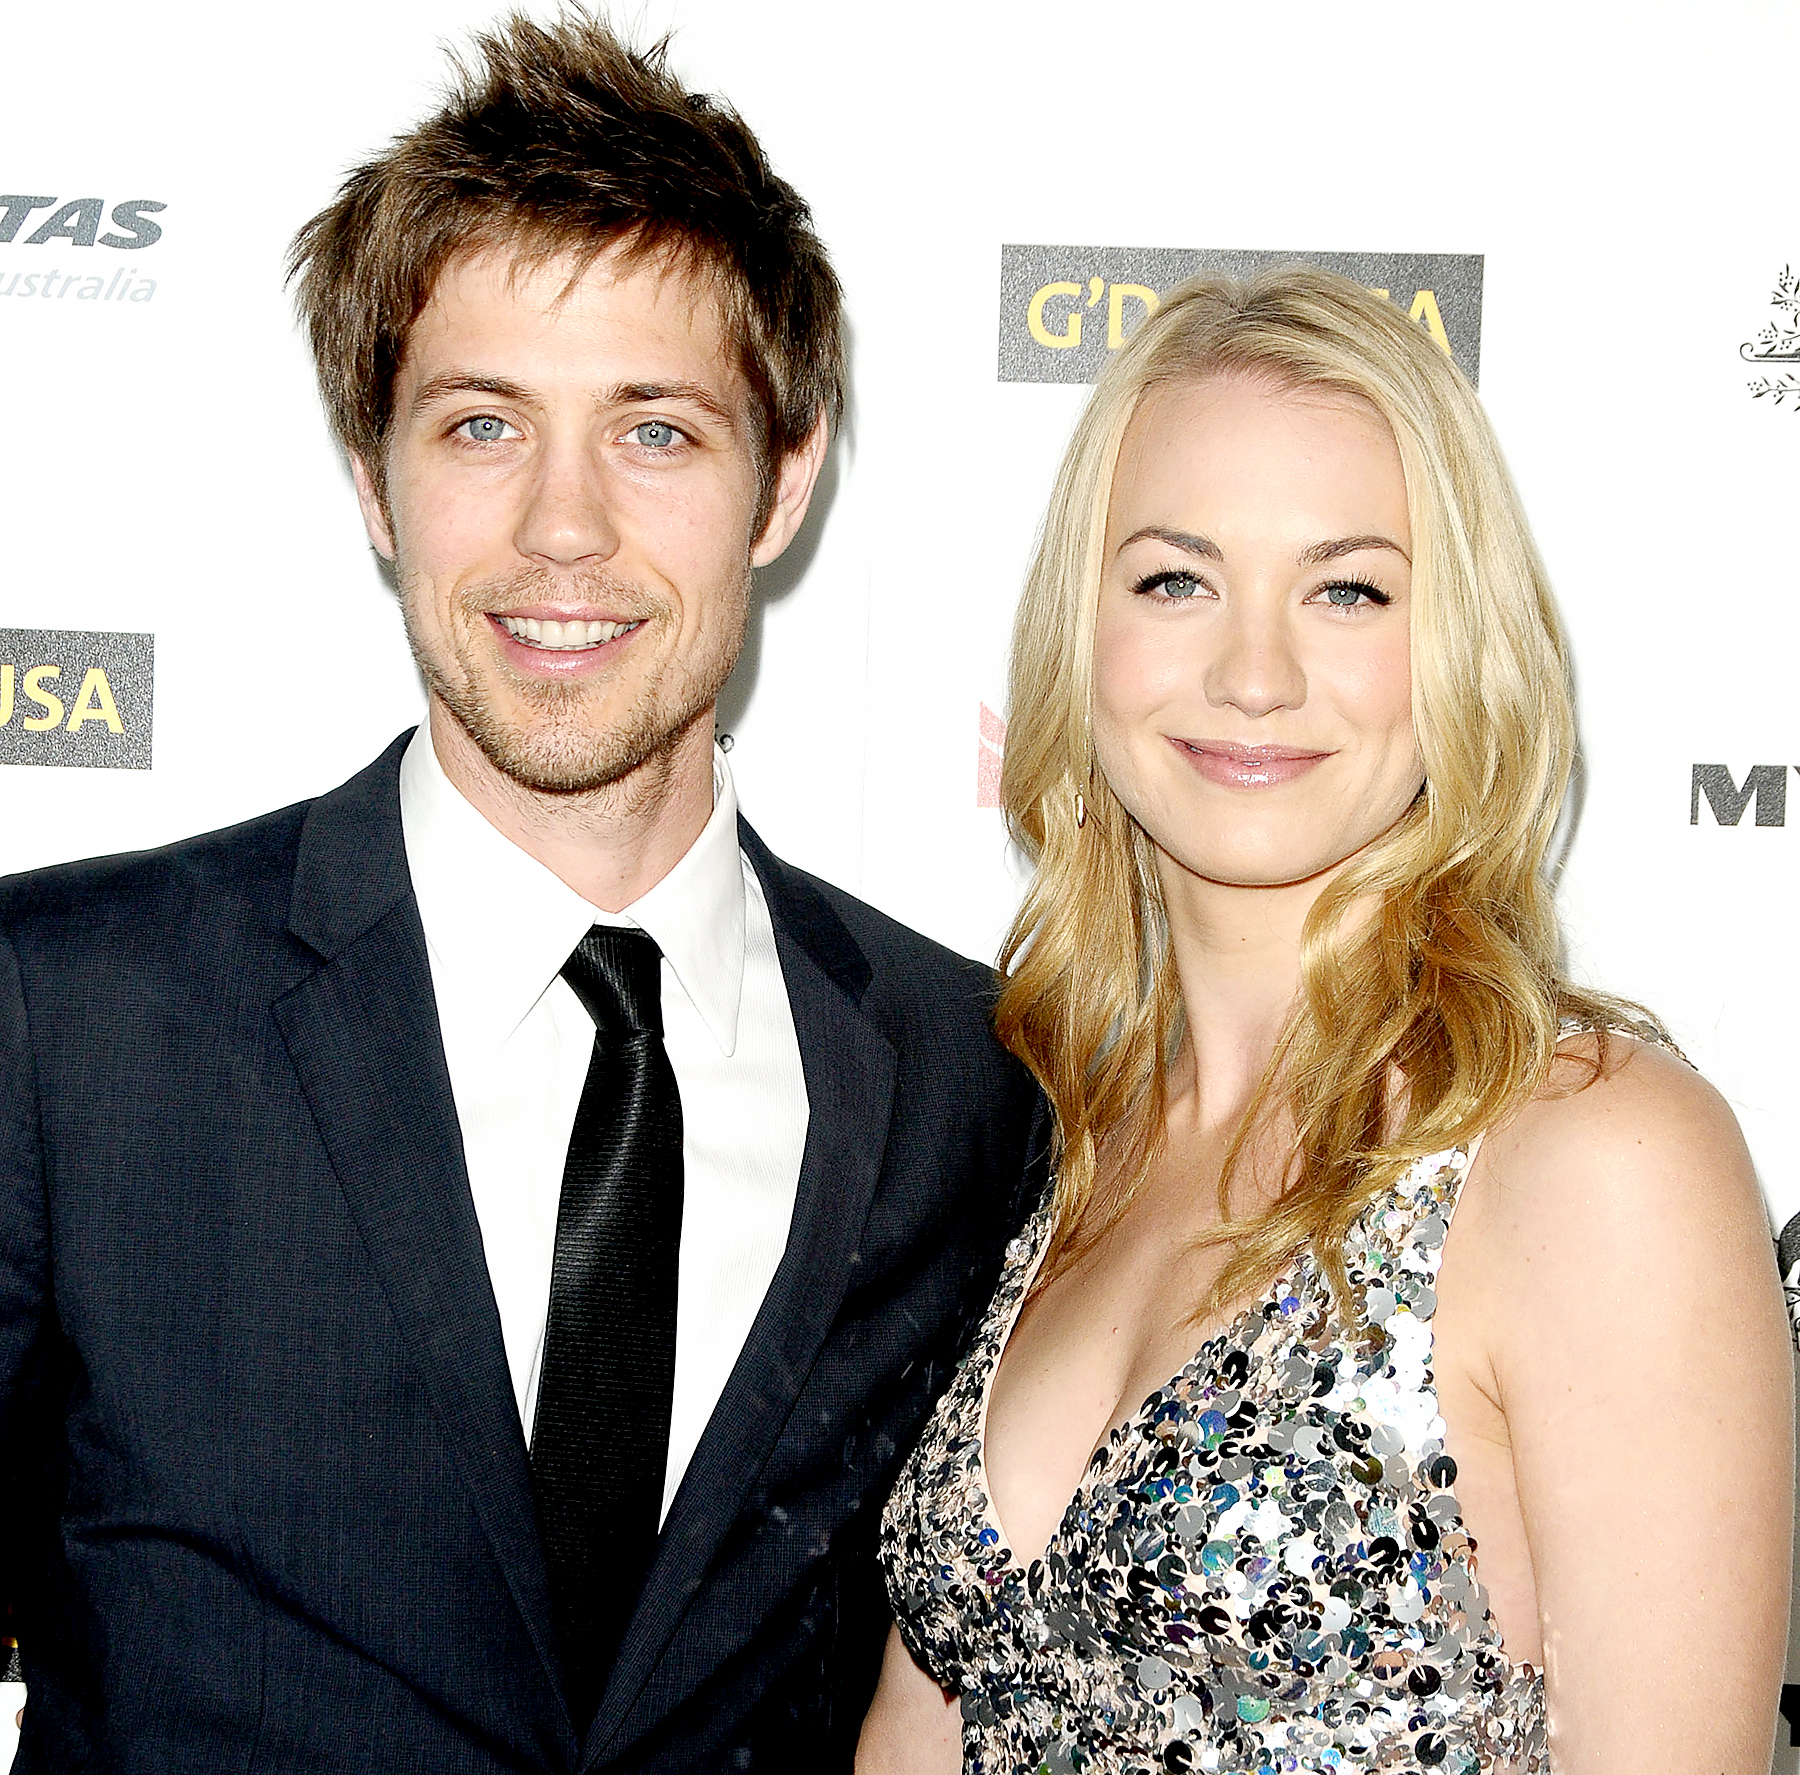 Tim Loden and Yvonne Strahovski attend the 2011 G'Day USA Los Angeles black tie gala at The Hollywood Palladium on January 22, 2011 in Los Angeles, California.